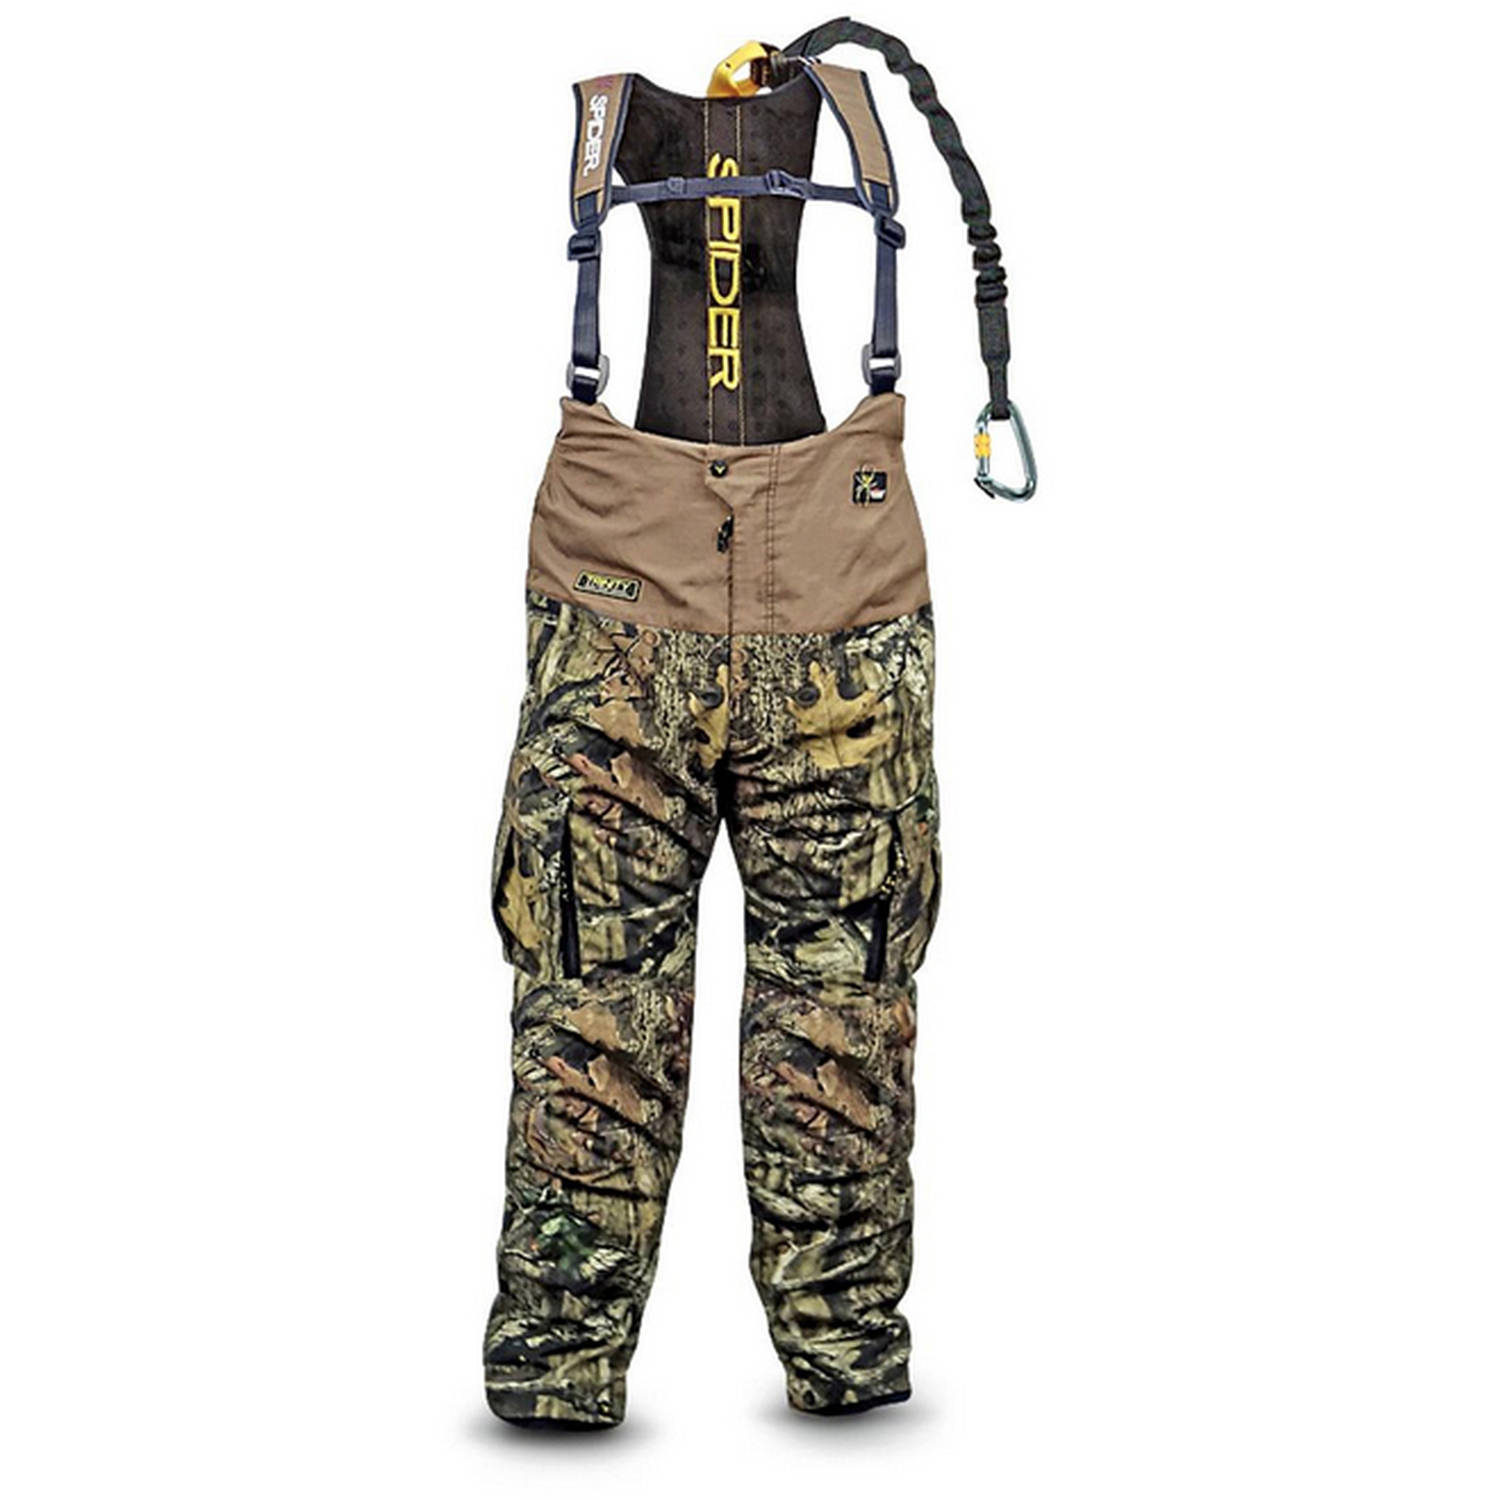 Men's Camo Bibs with Built in Harness System Tree Spider SpiderWeb ScentBlocker, Mossy Oak Infinity, Available in Multiple Sizes